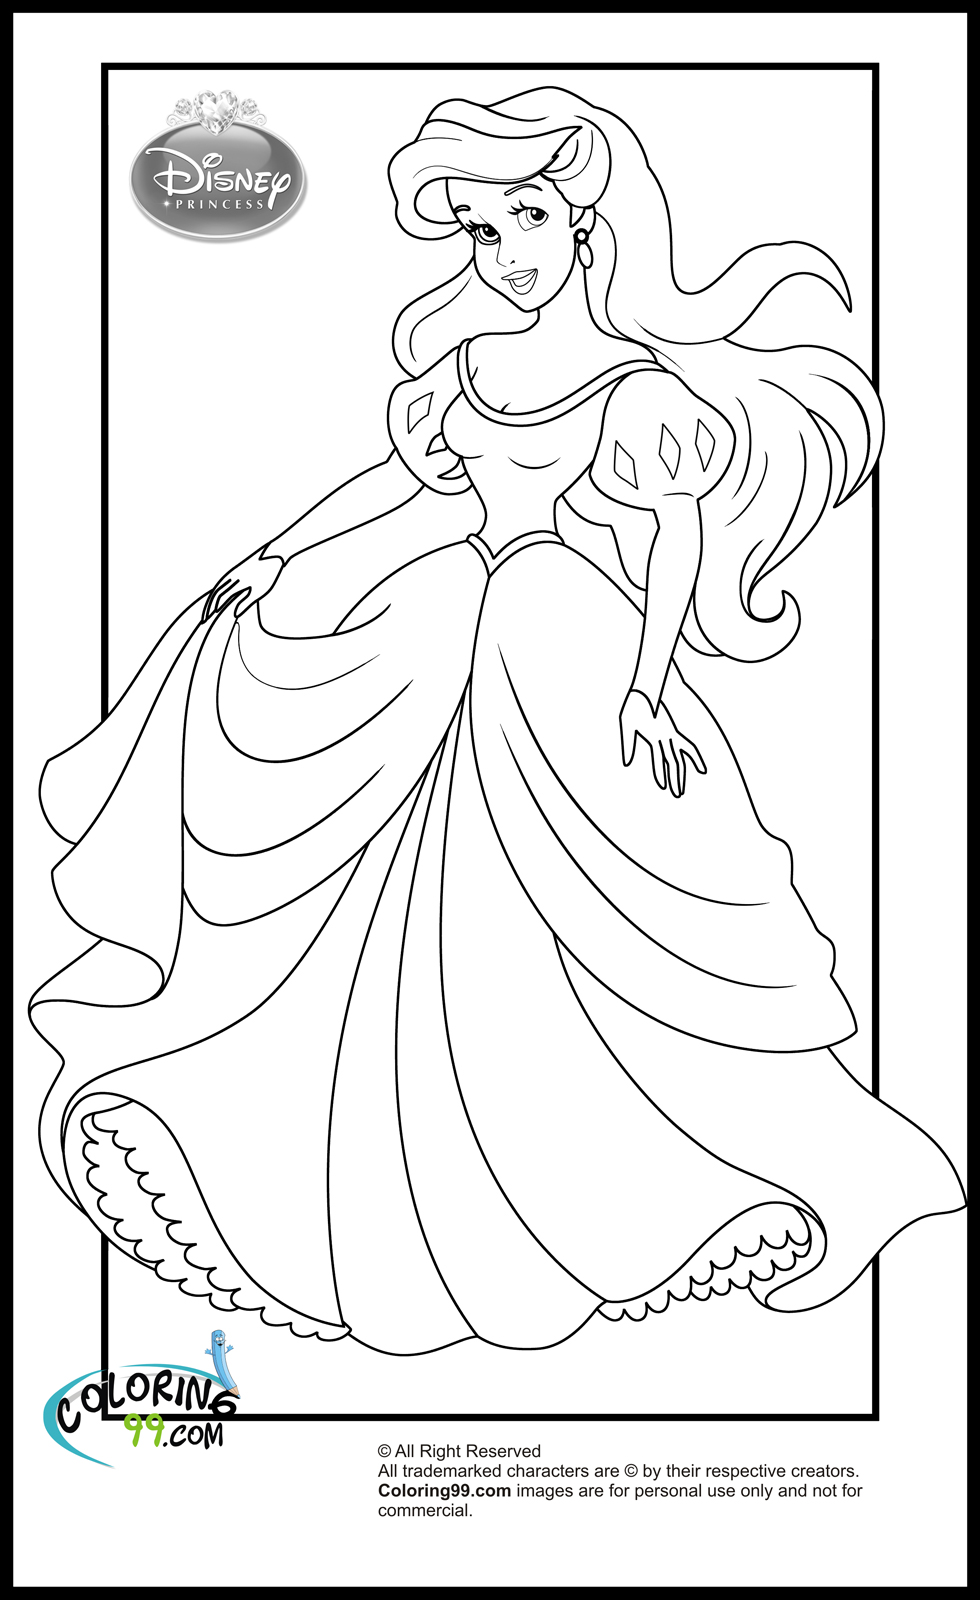 Disney Princess Coloring Pages Minister Coloring Disney Princess Coloring Pages For Free Coloring Sheets